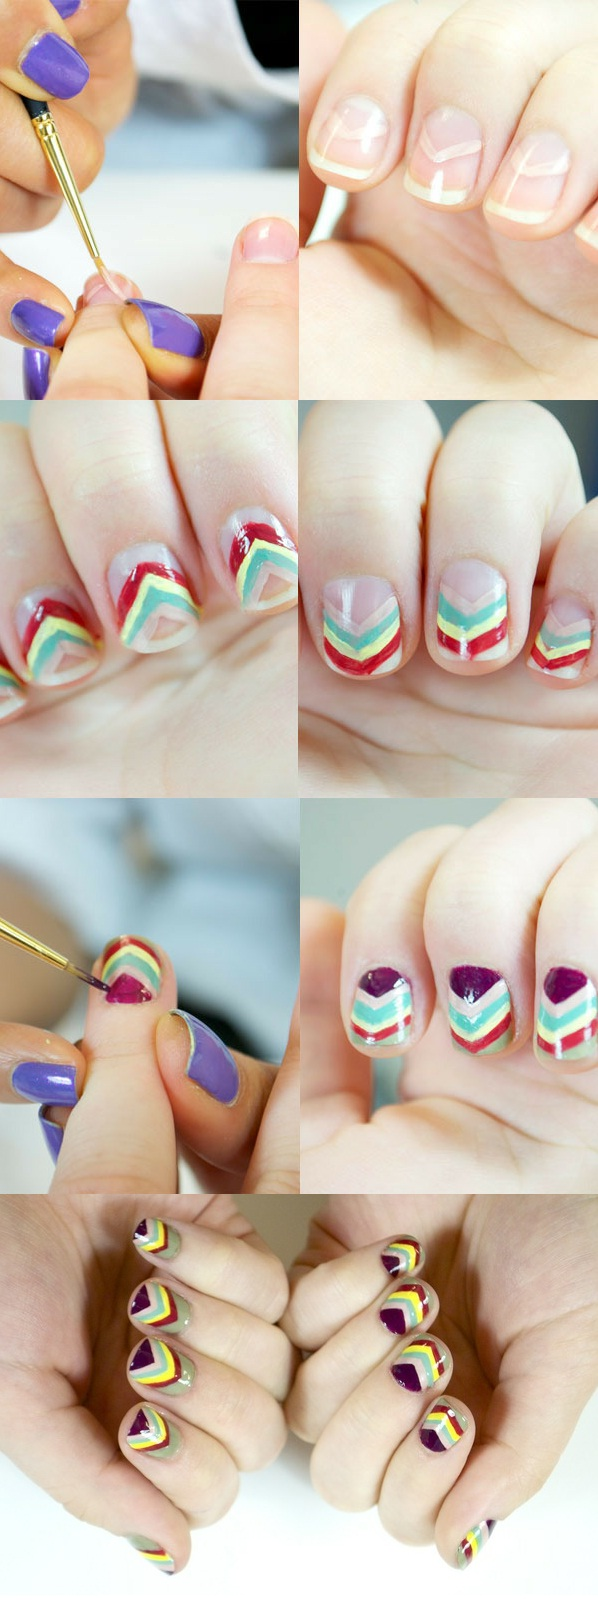 "How to do a Missoni-inspired Manicure ""Nails Art Tutorial"""